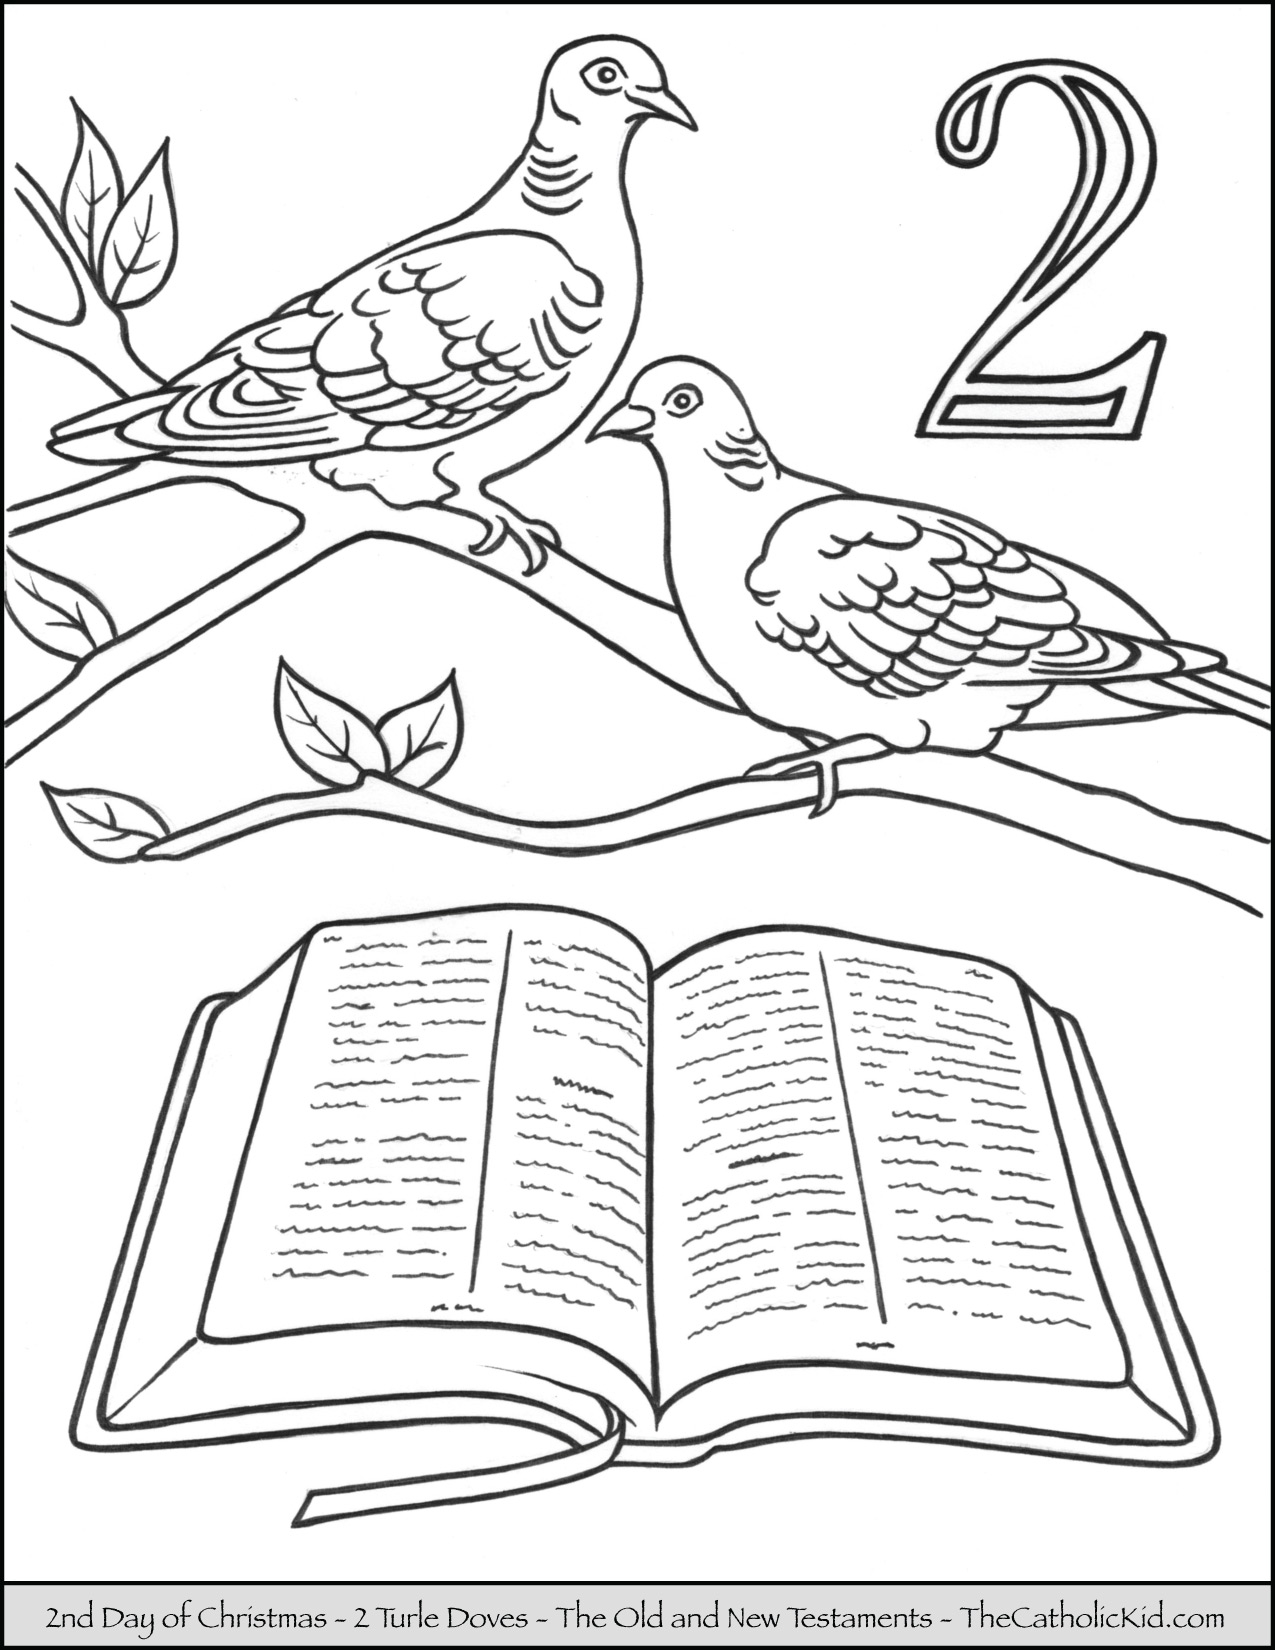 12 days of christmas coloring pages twelve days of christmas coloring pages coloring home christmas of pages 12 coloring days